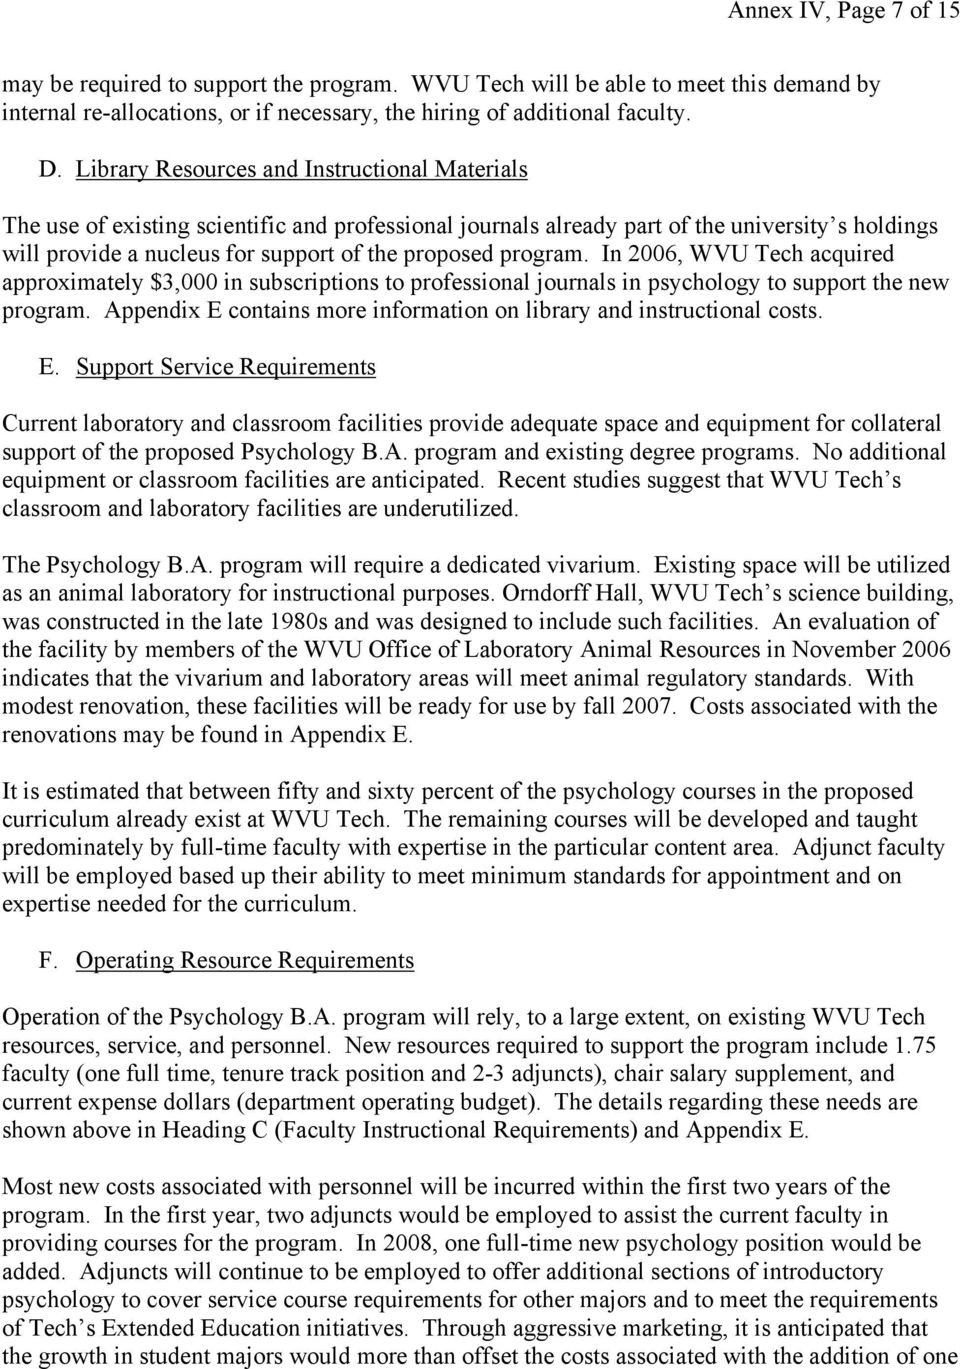 program. In 2006, WVU Tech acquired approximately $,000 in subscriptions to professional journals in psychology to support the new program.